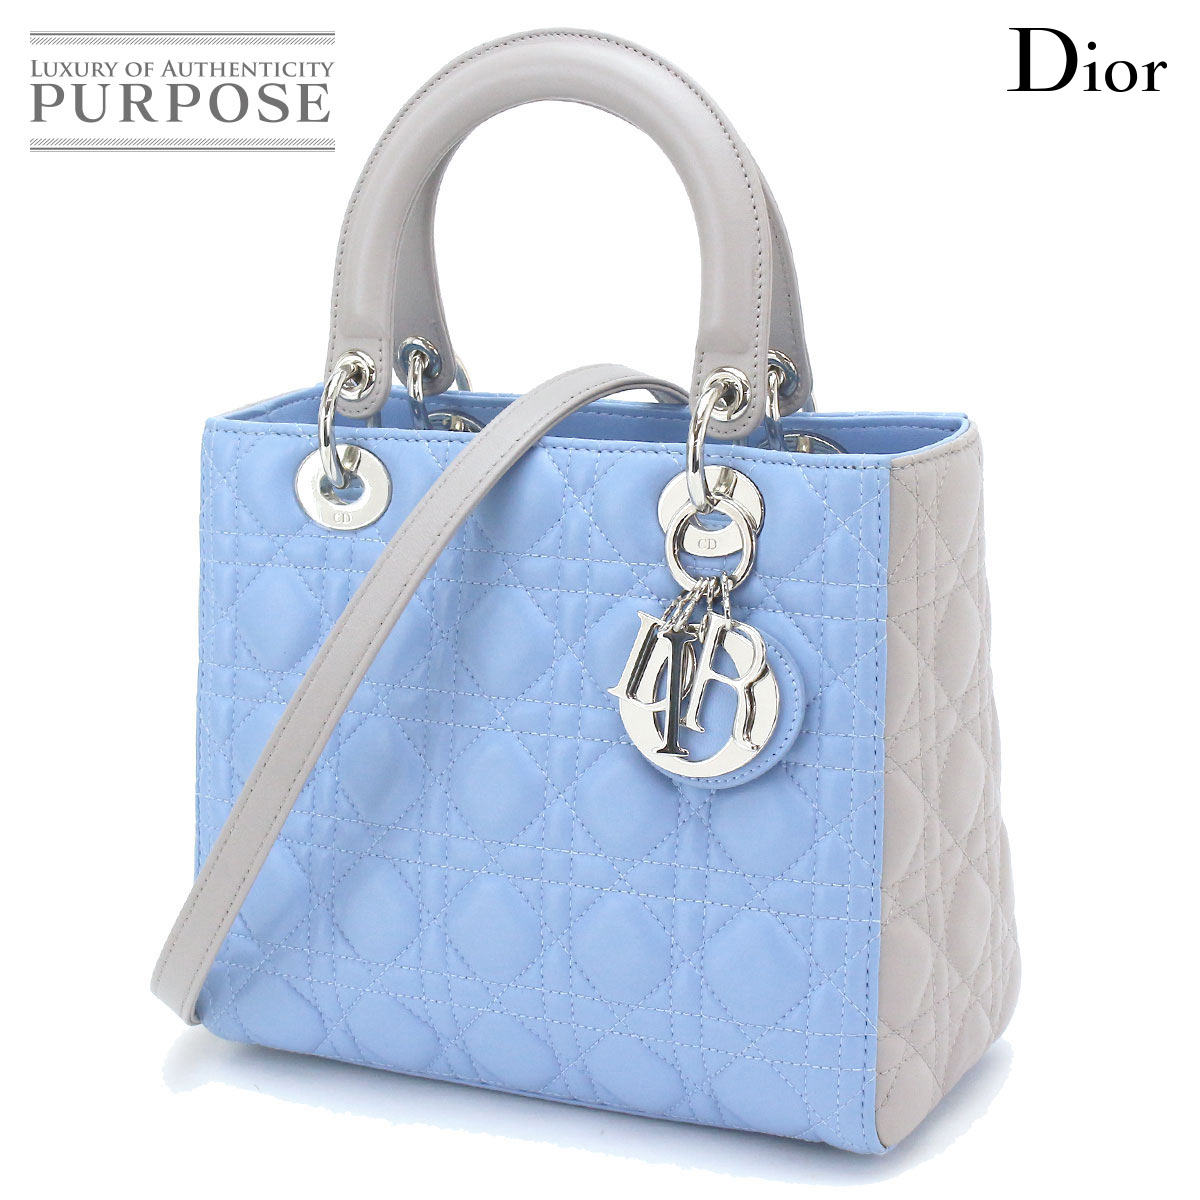 reputable site 74500 0f79d Christian Dior Christian Dior lady Dior 2way hand shoulder bag leather  light blue gray by color